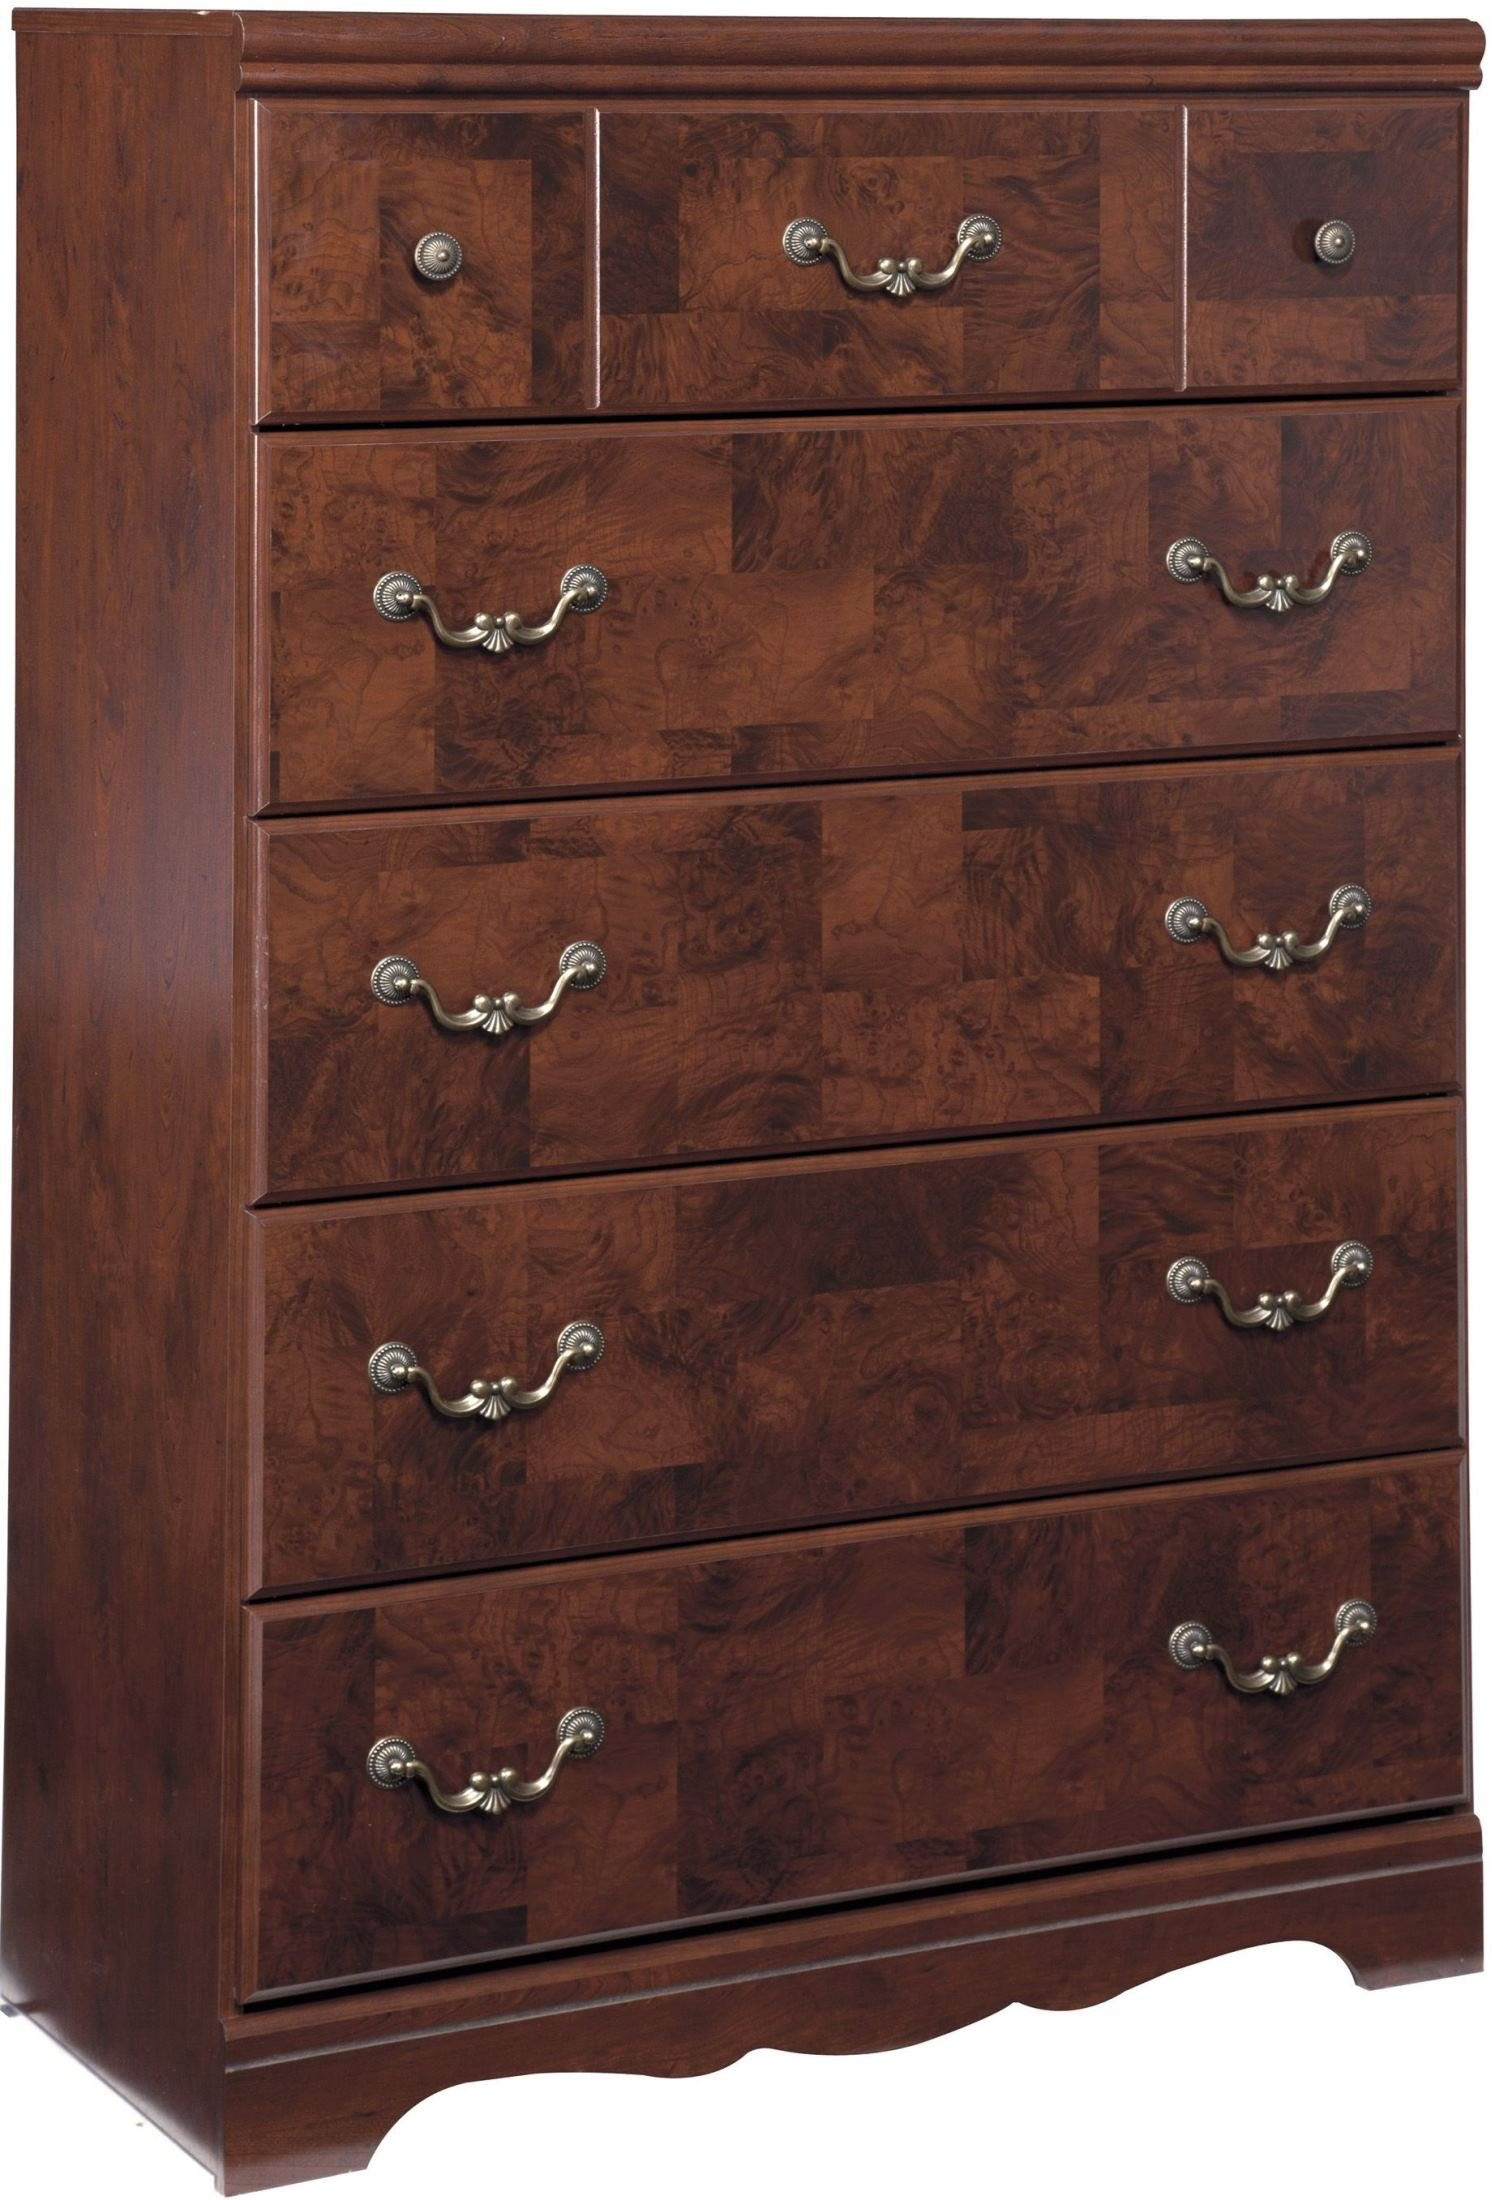 Ashley Delianna Collection B223-46 36'' 5-Drawer Chest with Faux Burl Details on Drawers Sculptural Handles and Side Roller Glides in Reddish